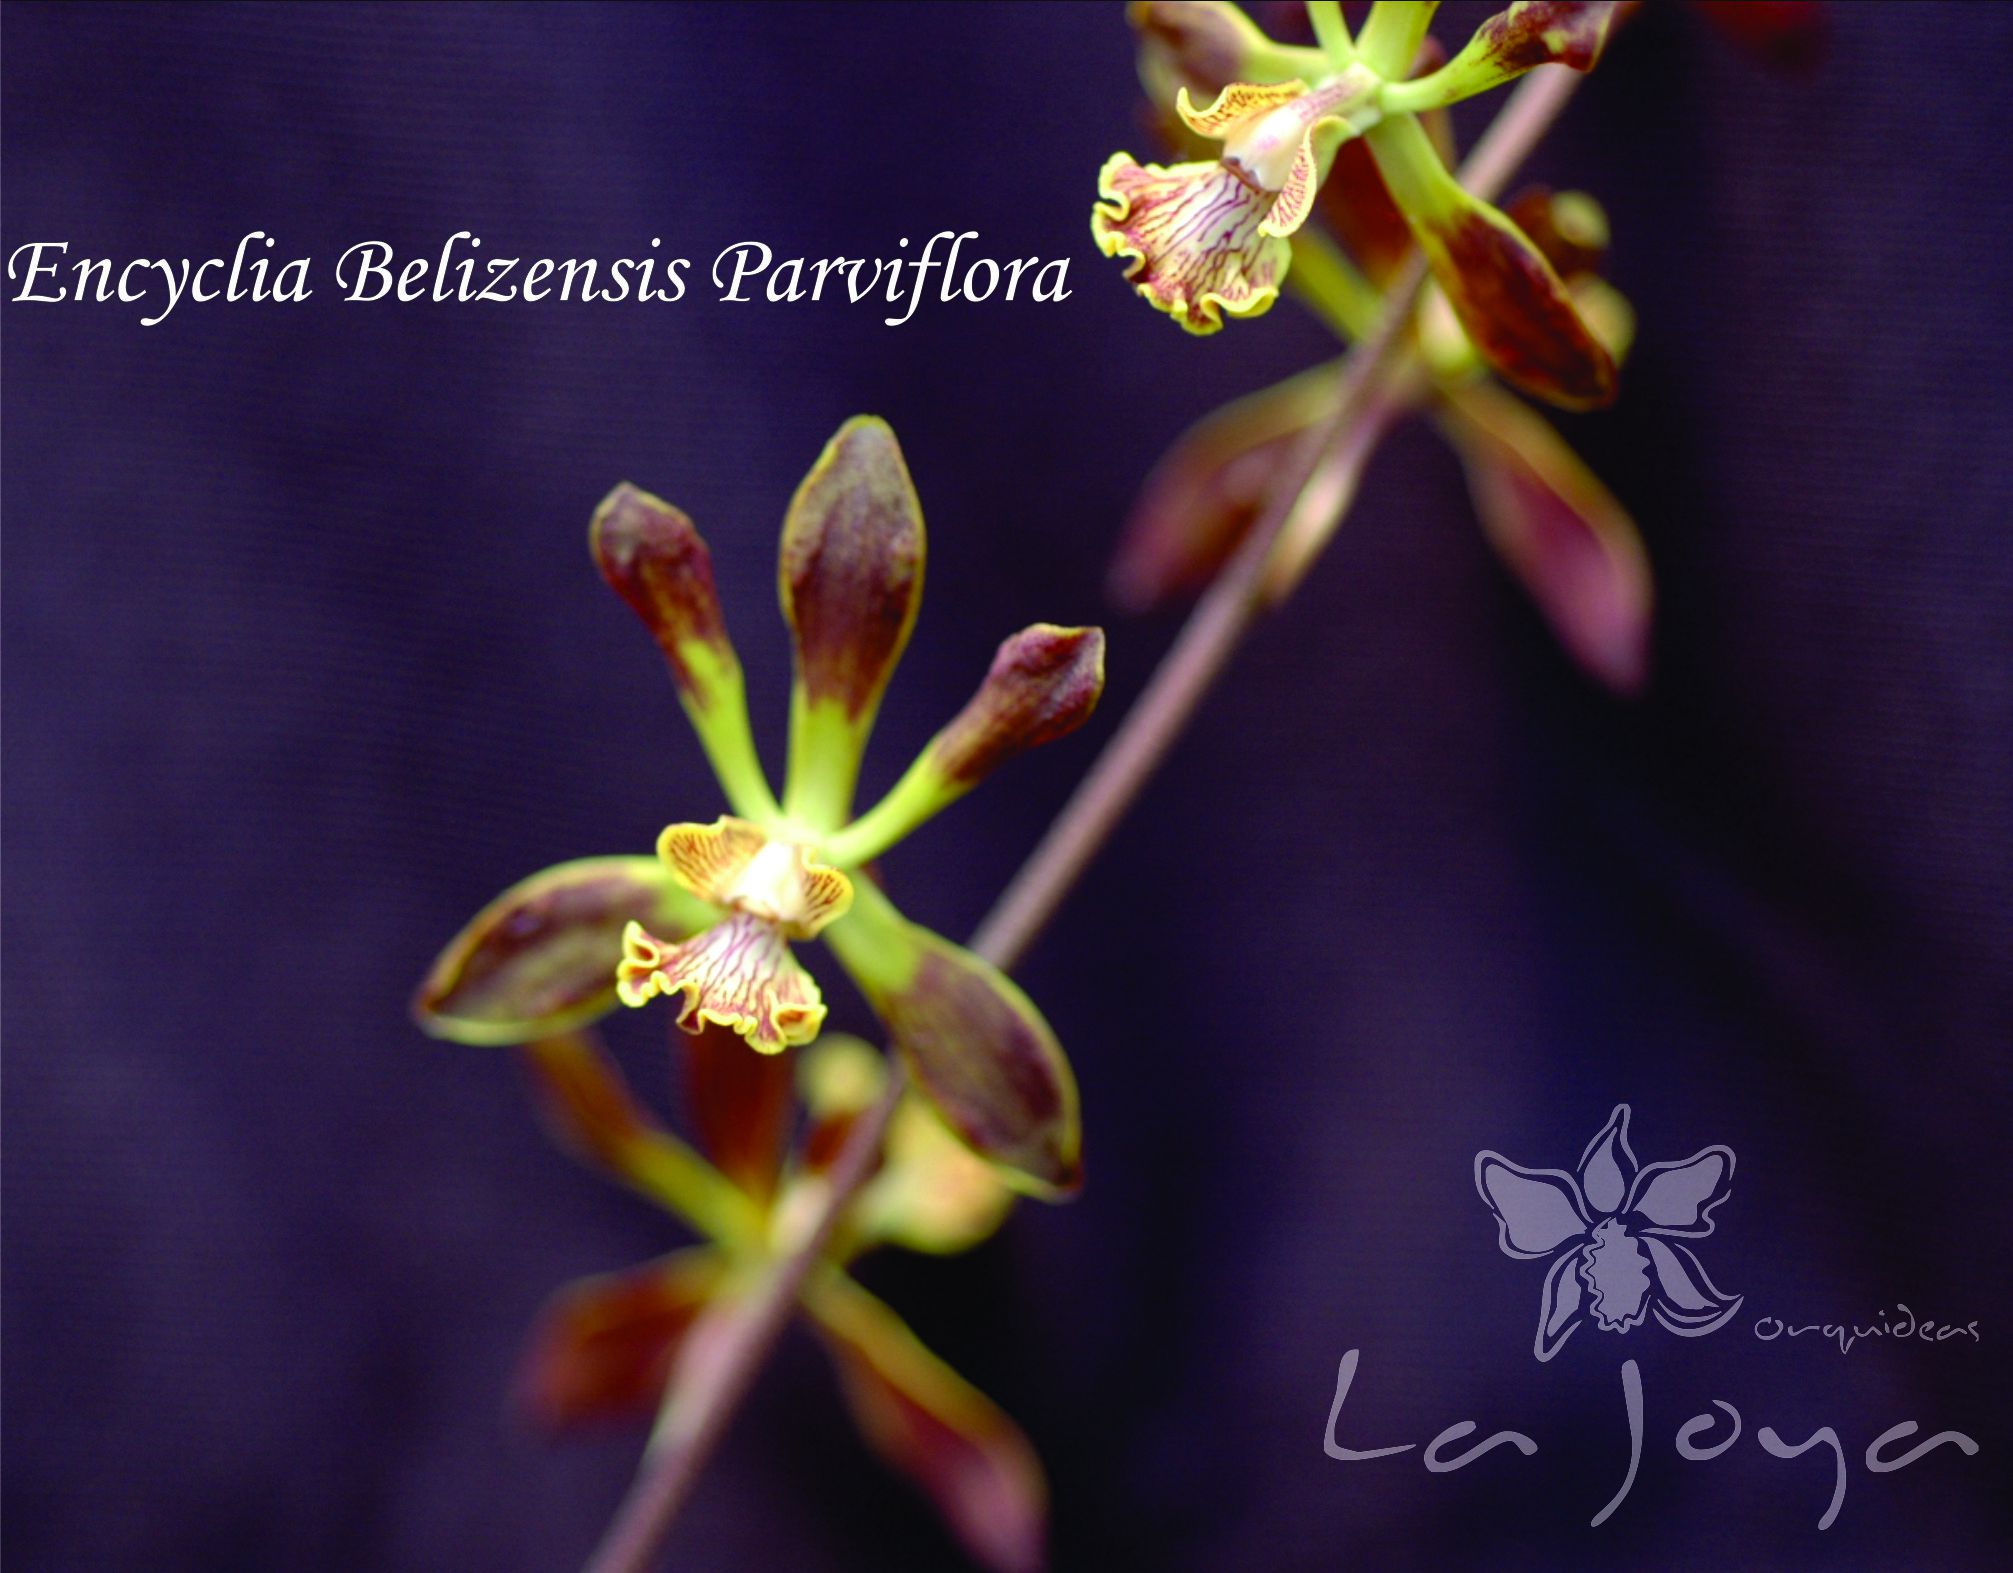 Encyclia Belizenses Parviflora